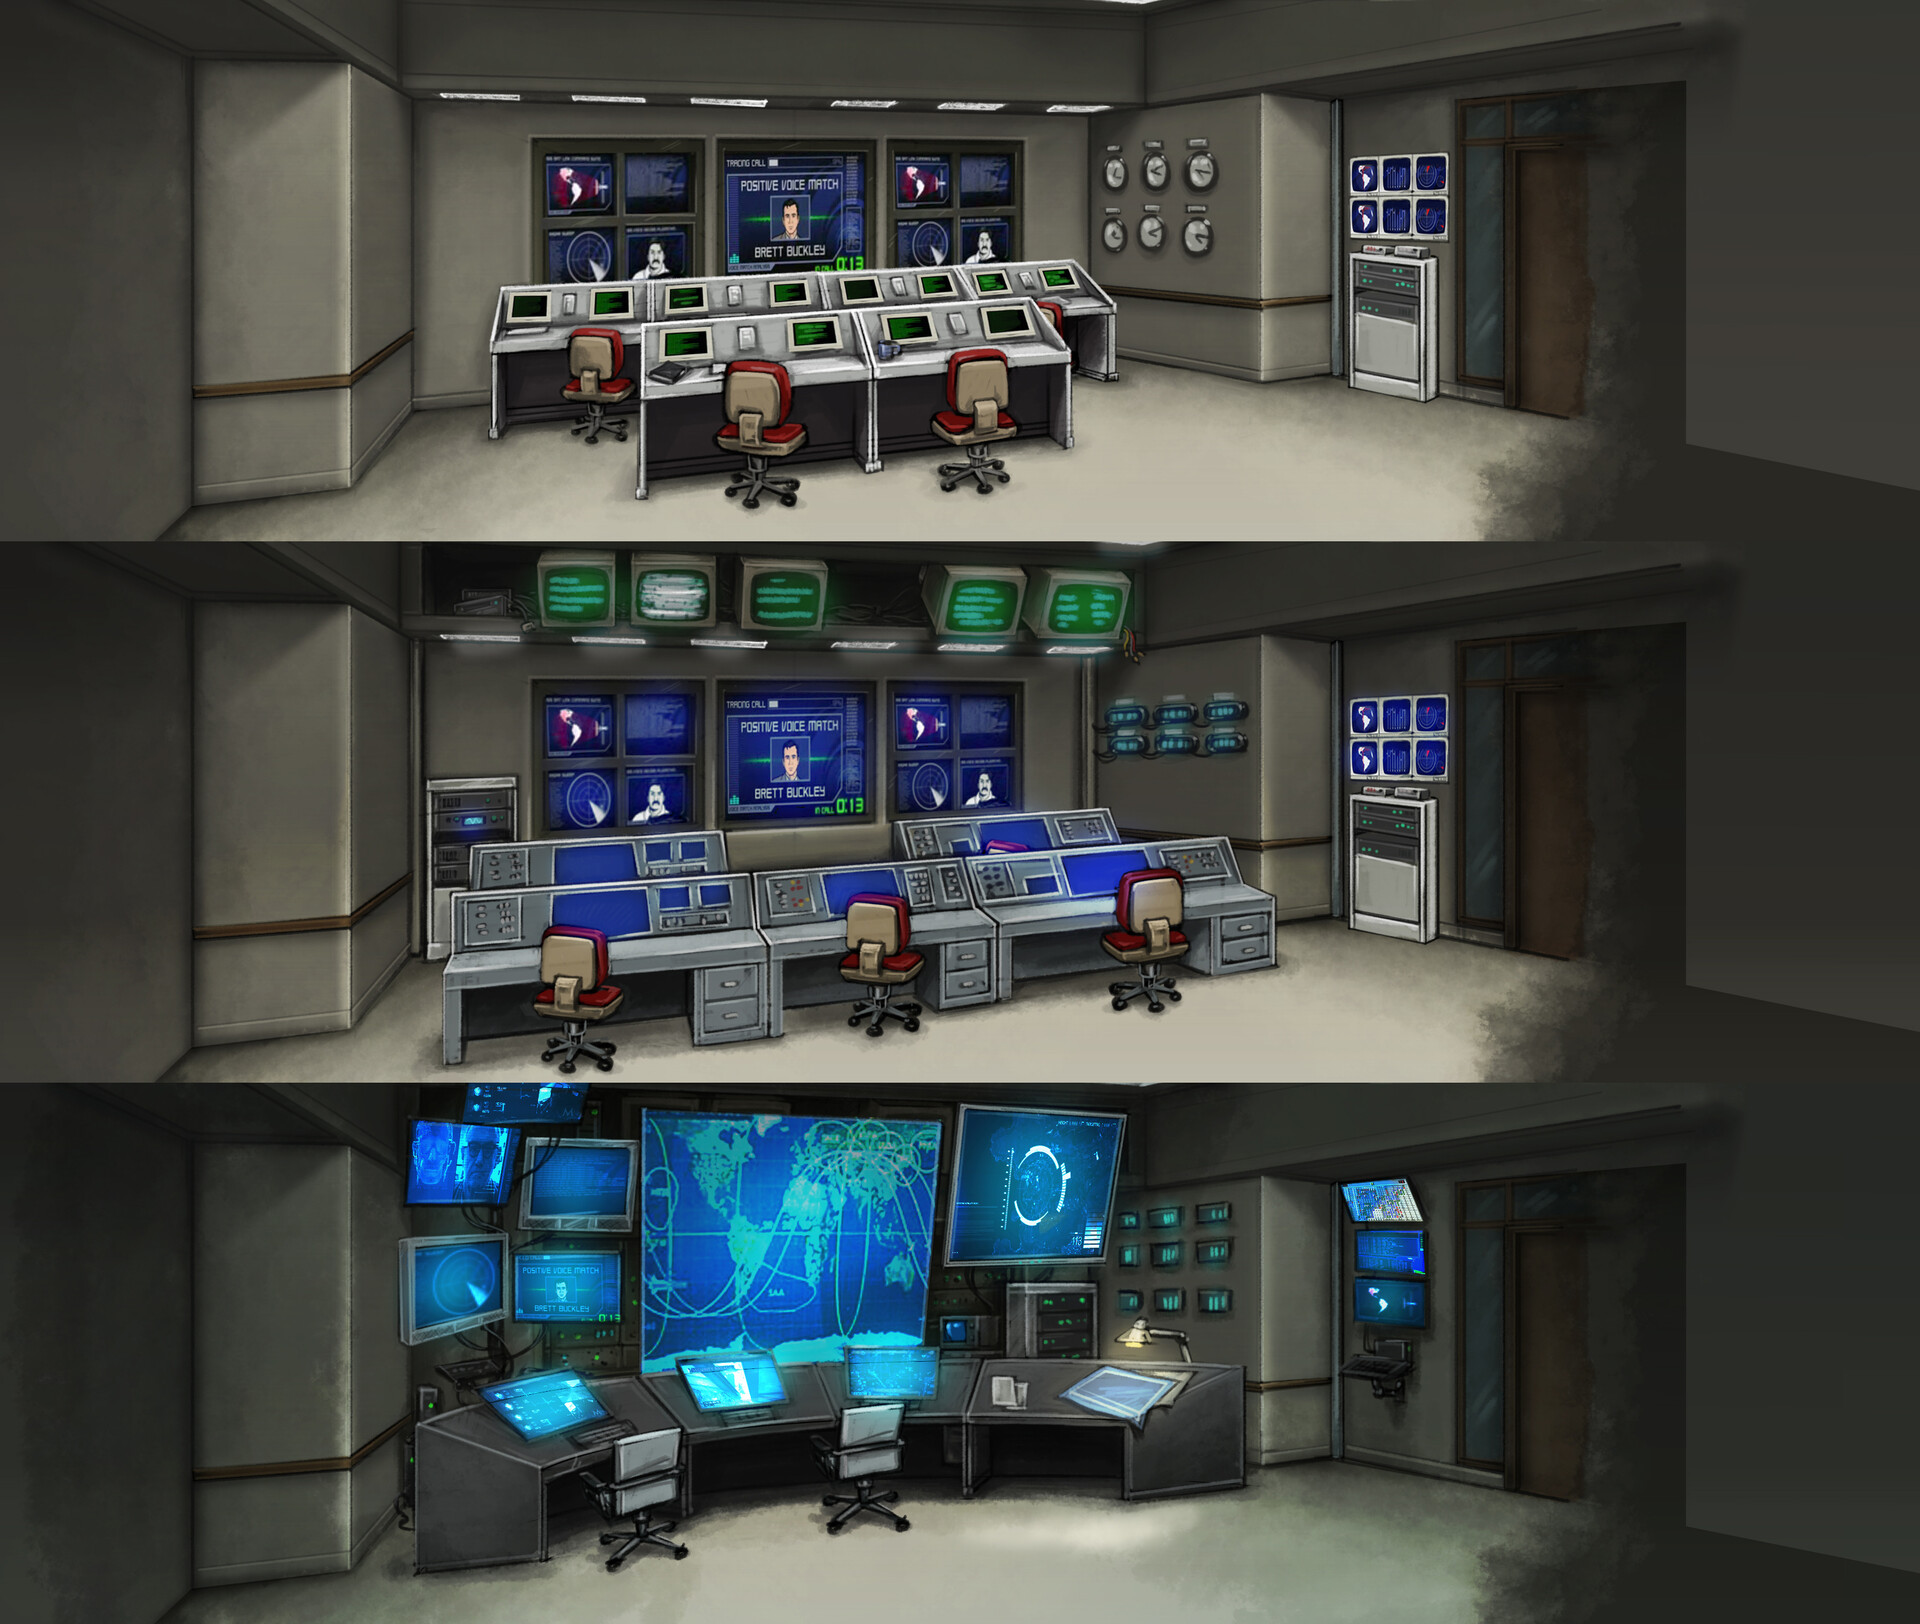 The Situation Room at various stages of upgrade.